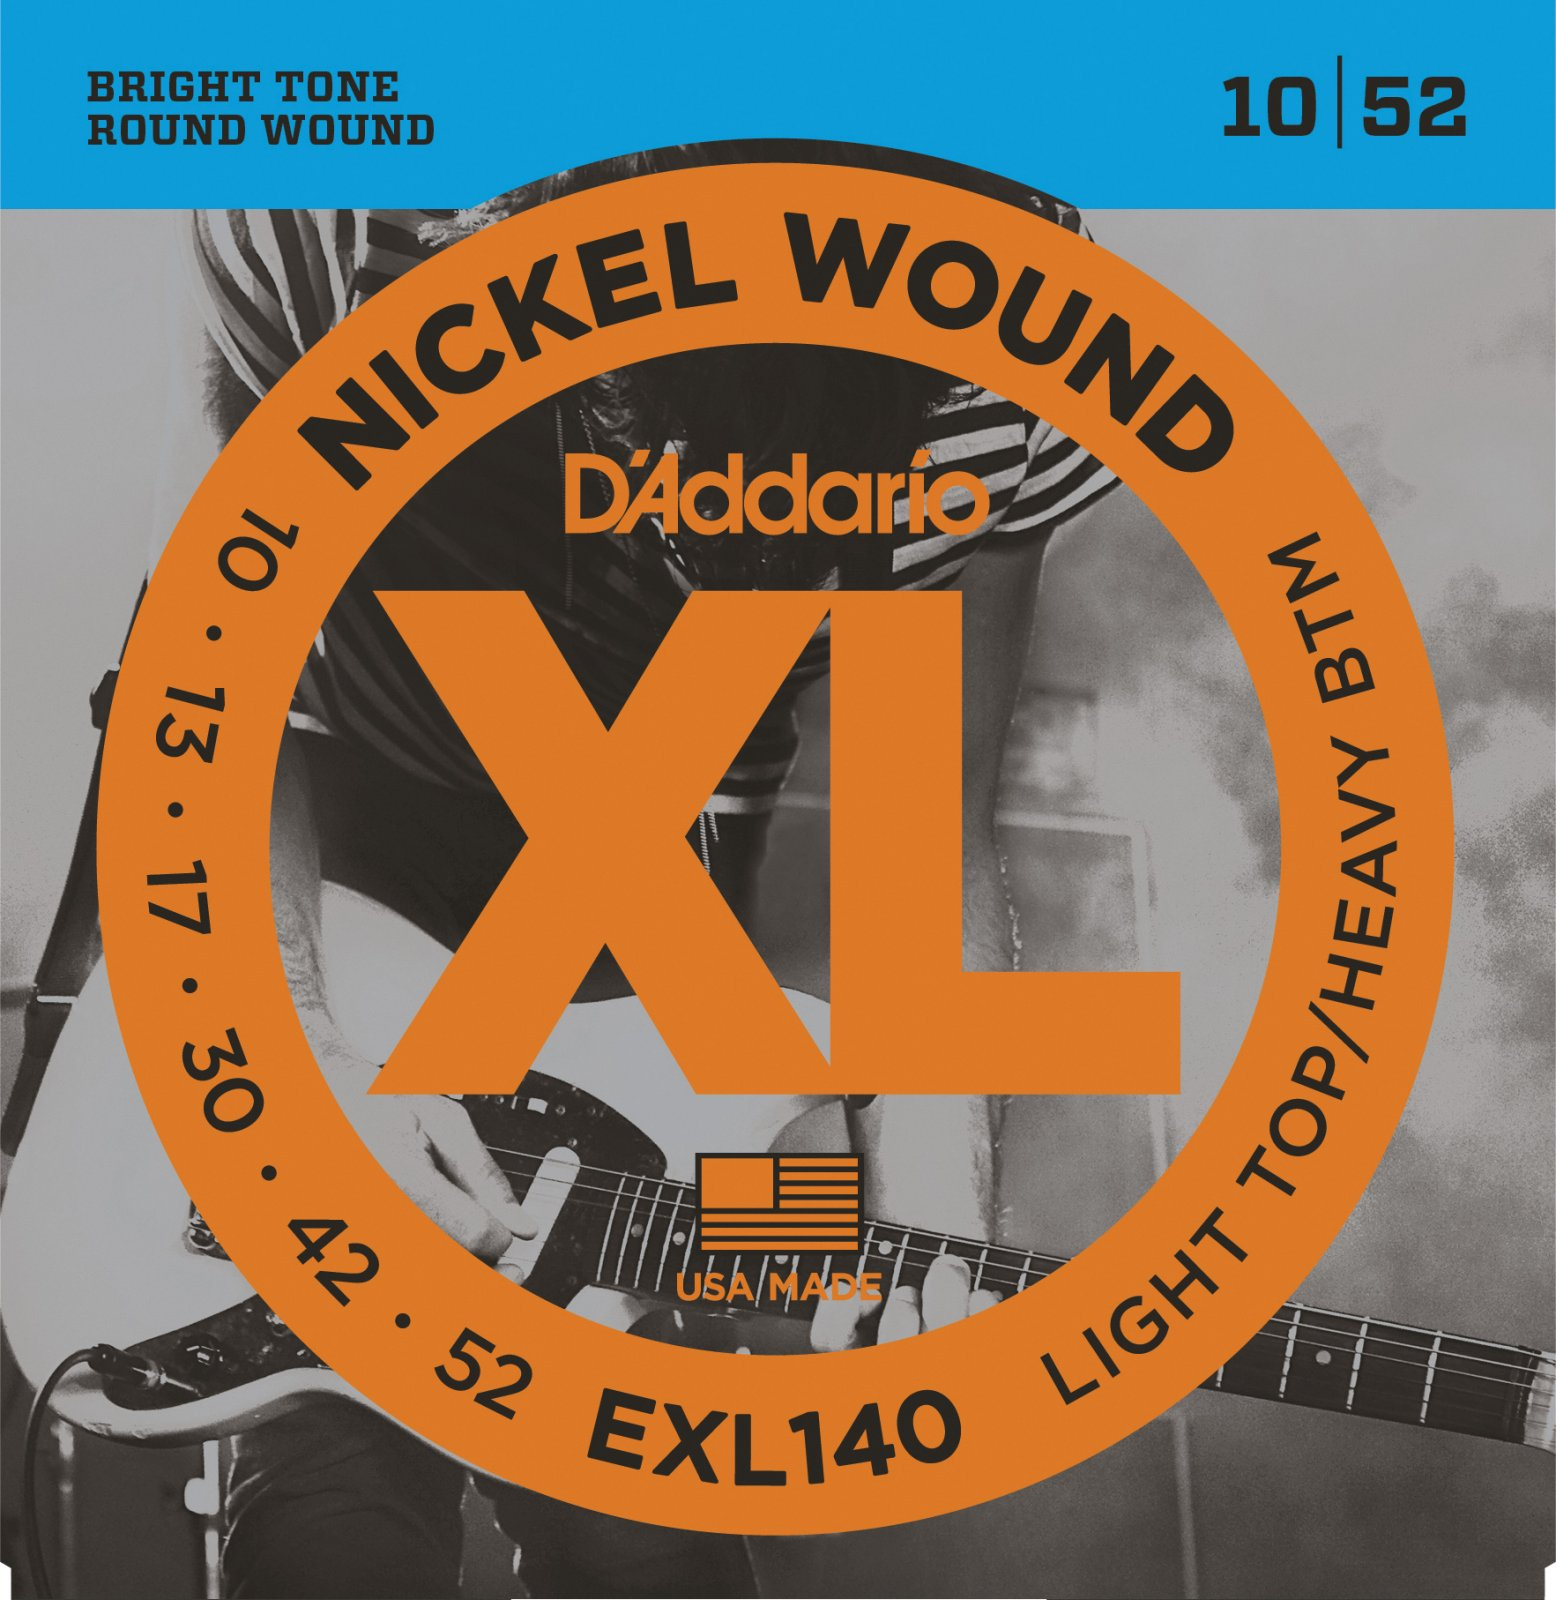 D'Addario EXL140 Nickel Wound Electric Guitar Strings - Light Top/Heavy Bottom, 10-52